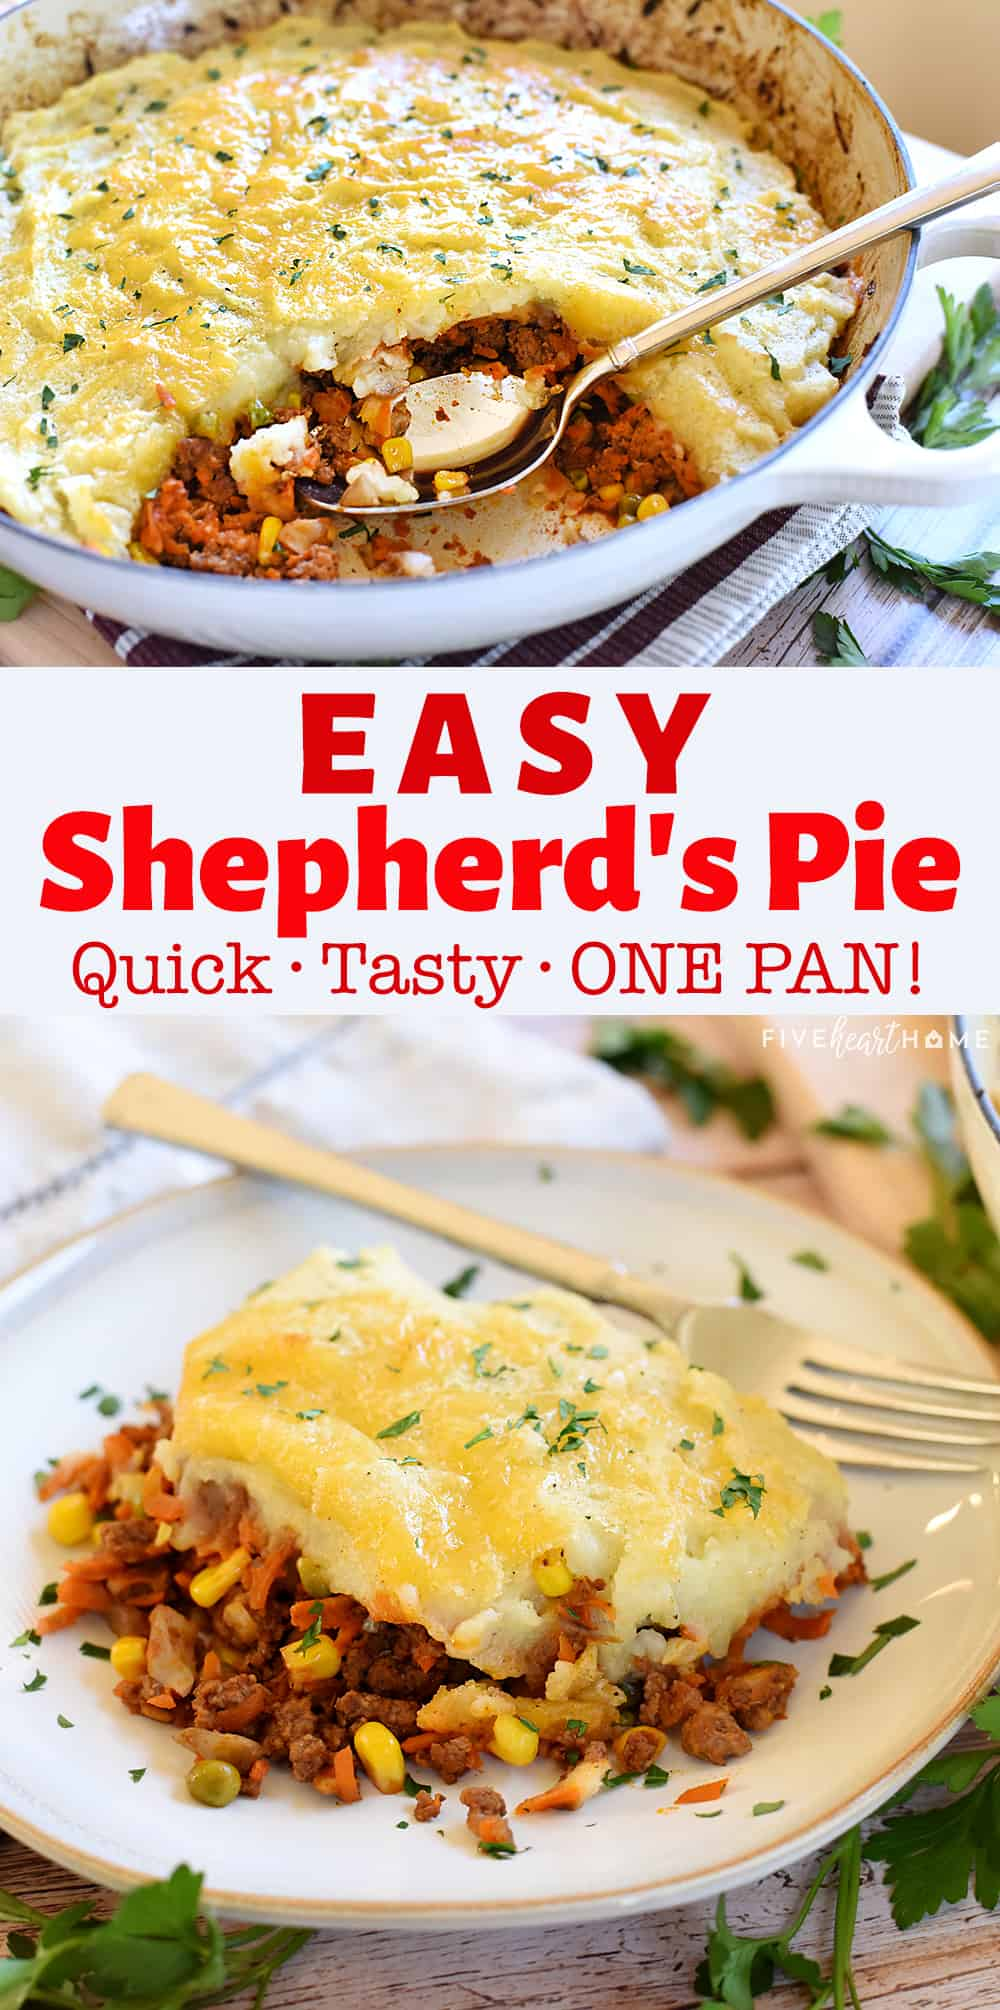 Easy Shepherd's Pie ~ a one-pan skillet dinner loaded with savory beef and colorful veggies...and it's the perfect recipe for using up those leftover mashed potatoes! | FiveHeartHome.com via @fivehearthome